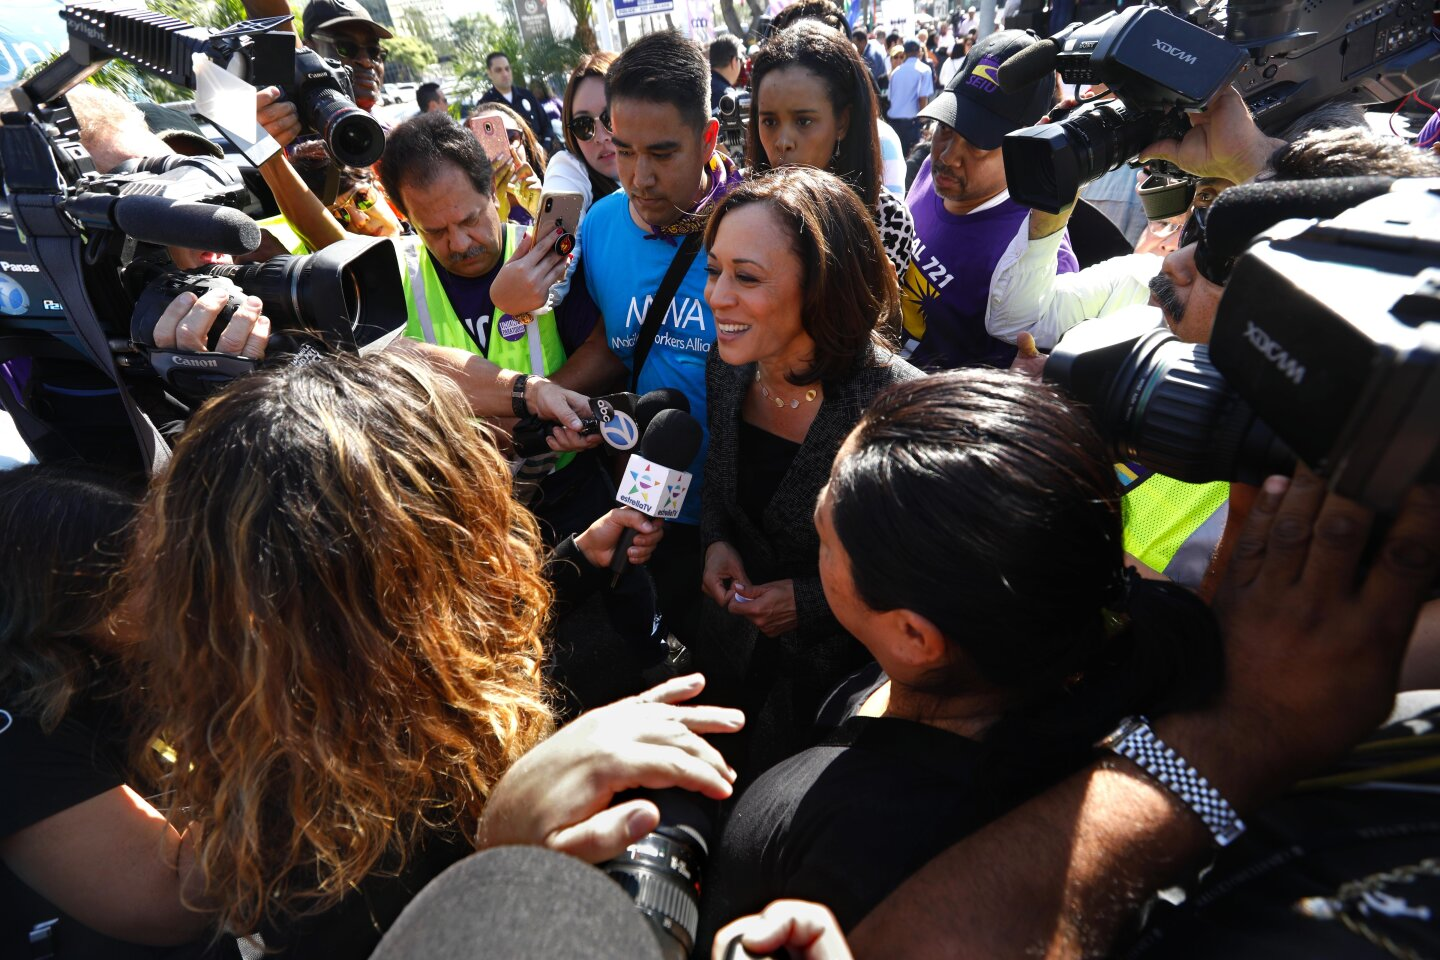 LOS ANGELES, CA - OCTOBER 2, 2019 - - Senator Kamala Harris, center, speaks to media after addressing hundreds of airport workers, Uber and Lyft drivers, janitors, city and county workers, and other workers before marching to Los Angeles International Airport in Los Angeles on October 2, 2019. The marchers are demanding that elected officials, locally, statewide and federally, take action to support unions for all people--no matter where they work. Workers also marched for better pay and benefits and want to unionize. The rally is on behalf of all kinds of workers, from rideshare to fast food to airport service workers. Speakers also included Los Angeles County Supervisor Janice Hahn, former state Sen. Kevin de Leon and Mary Kay Henry, president of the Service Employees International Union. The Rev. Jesse Jackson was also in attendance. (Genaro Molina / Los Angeles Times)